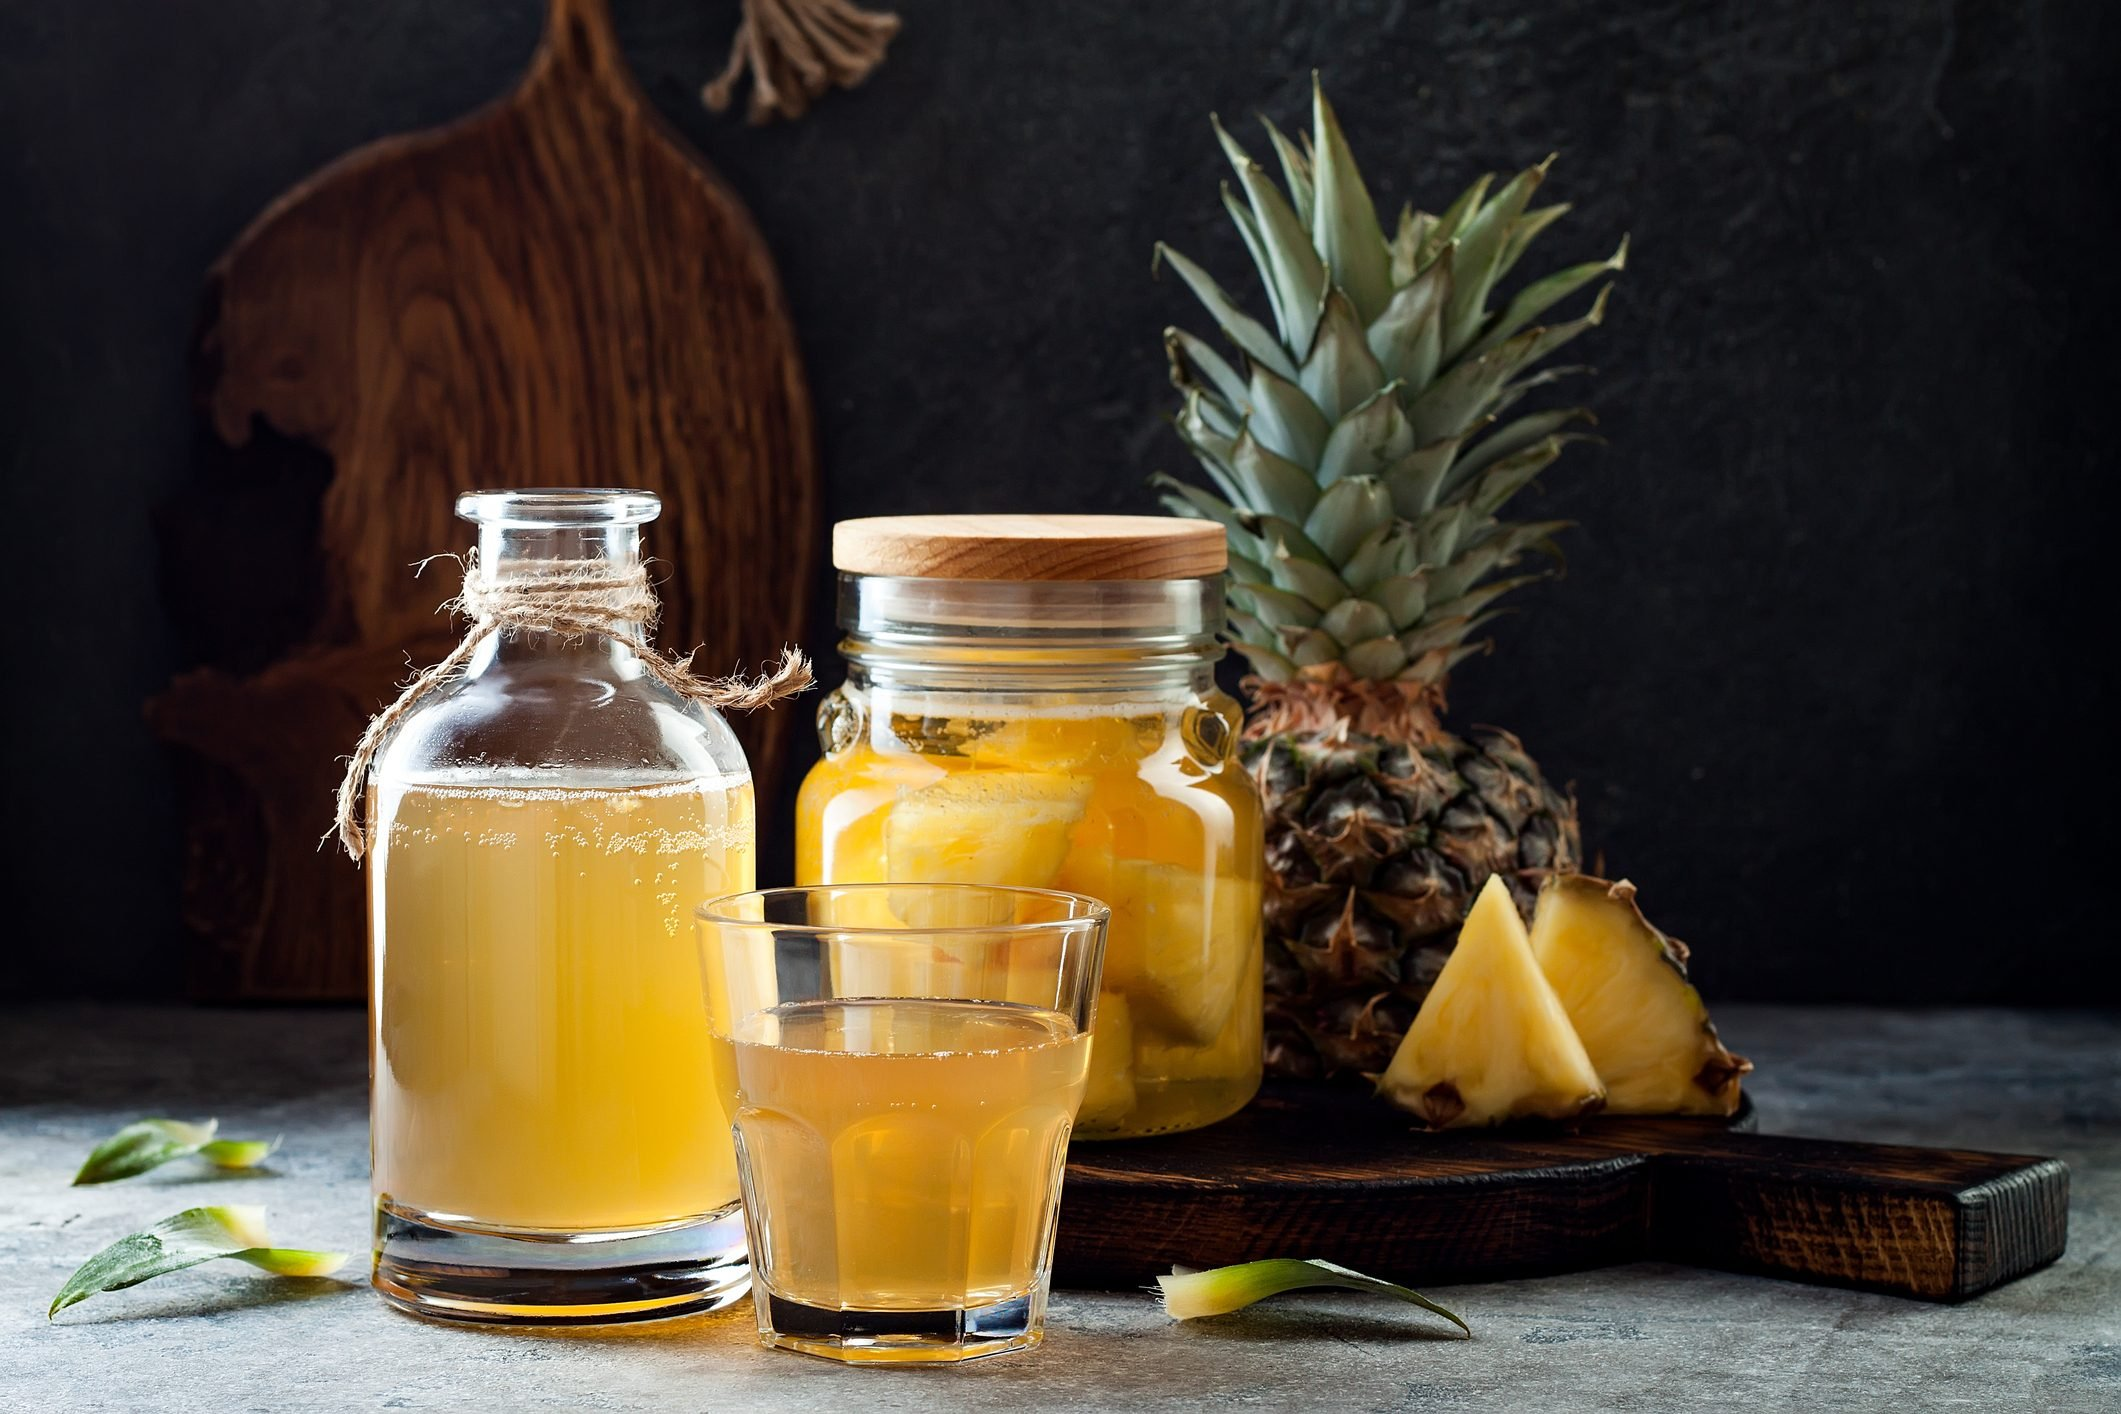 Fermented mexican pineapple Tepache. Homemade raw kombucha tea with pineapple. Healthy natural probiotic flavored drink.